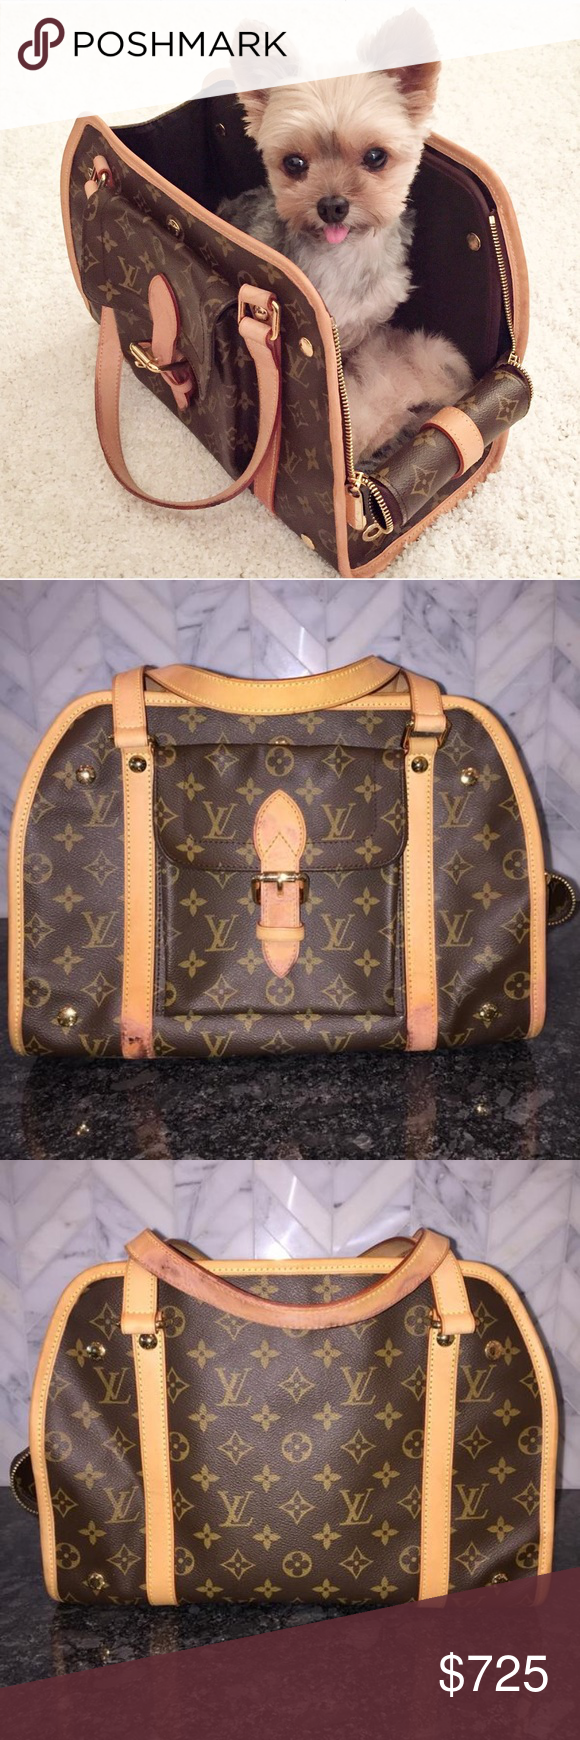 df84424674b LOUIS VUITTON Baxter PM Monogram Dog Carrier FABULOUS   CUTE! I love this  bag but bought another so selling this one! Previous seller had not  disclosed that ...